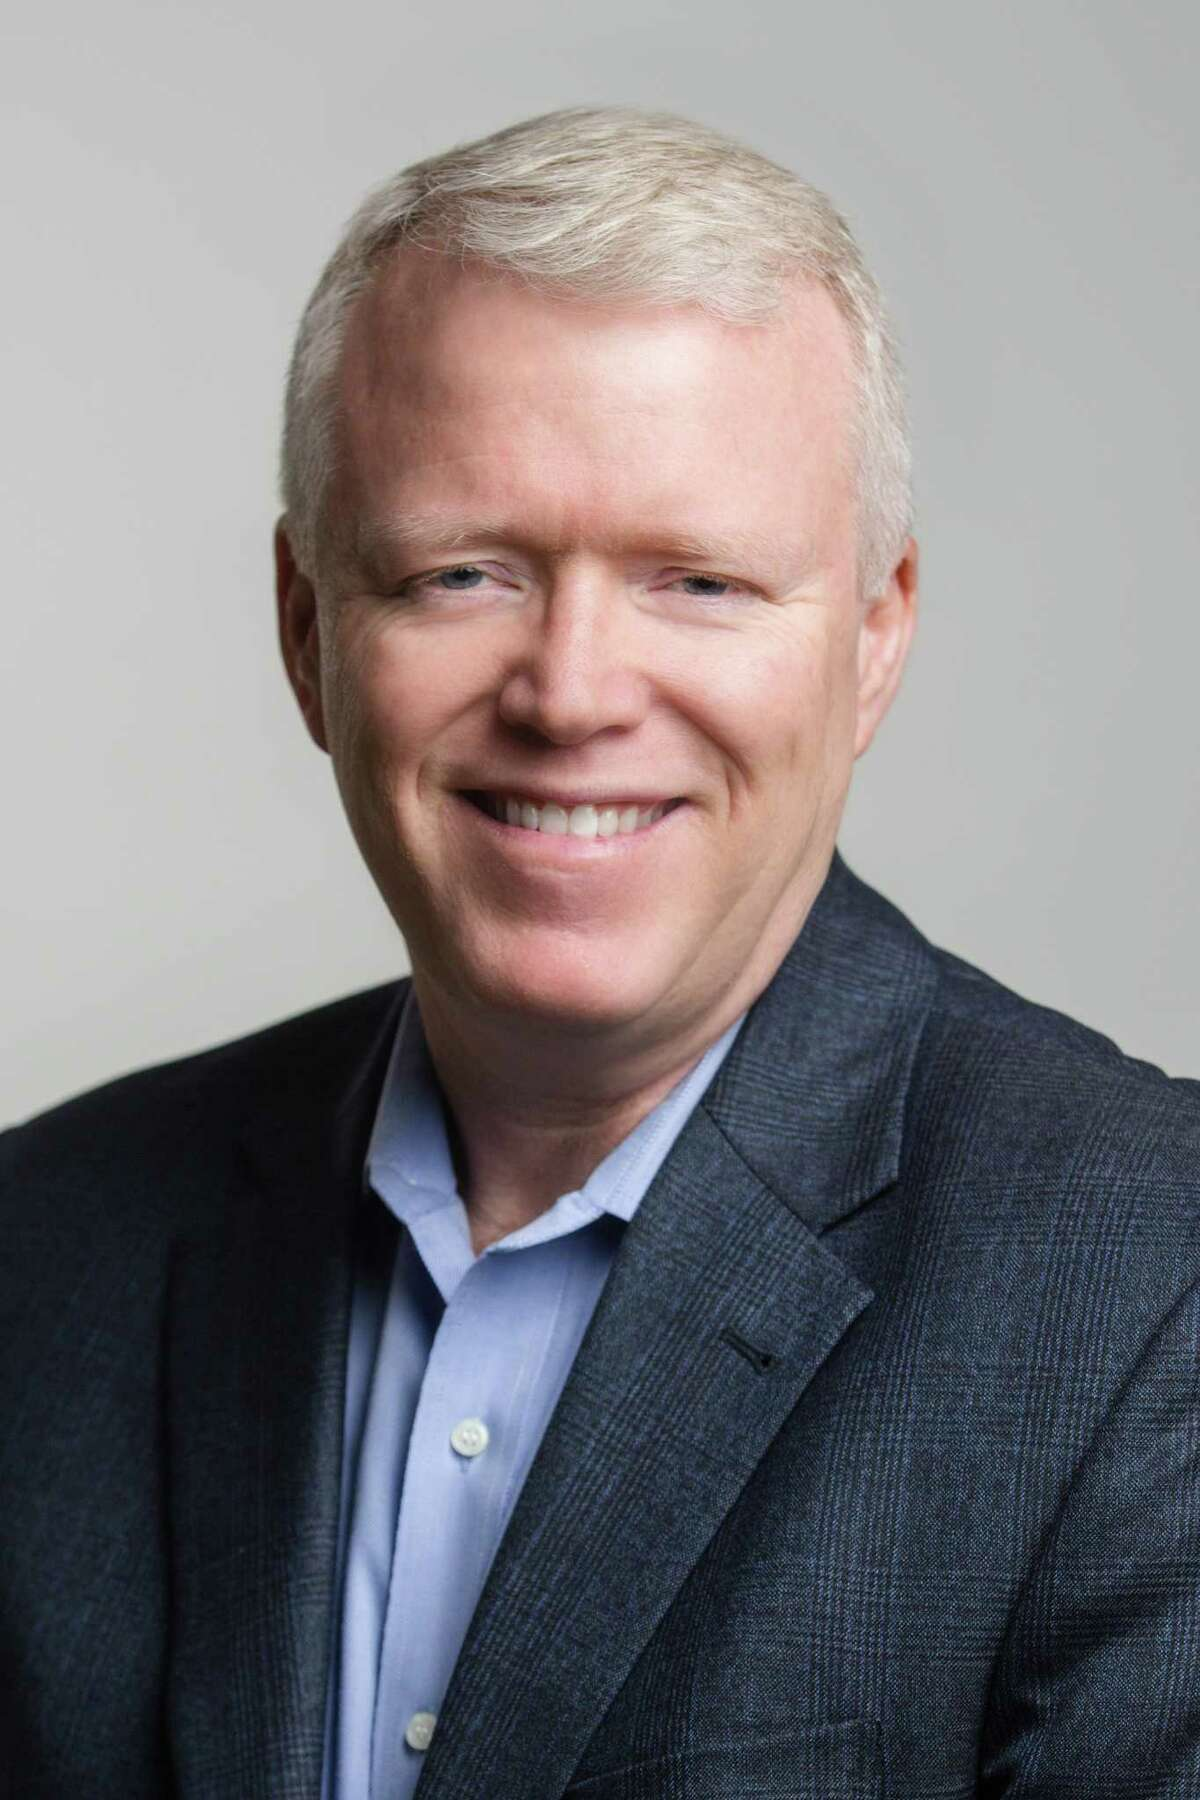 Doug Claffey,founder and chief strategy officer at Energage, a Philadelphia-based employee survey firm. Energage is the Times Union's survey partner for Top Workplaces.(Provided)